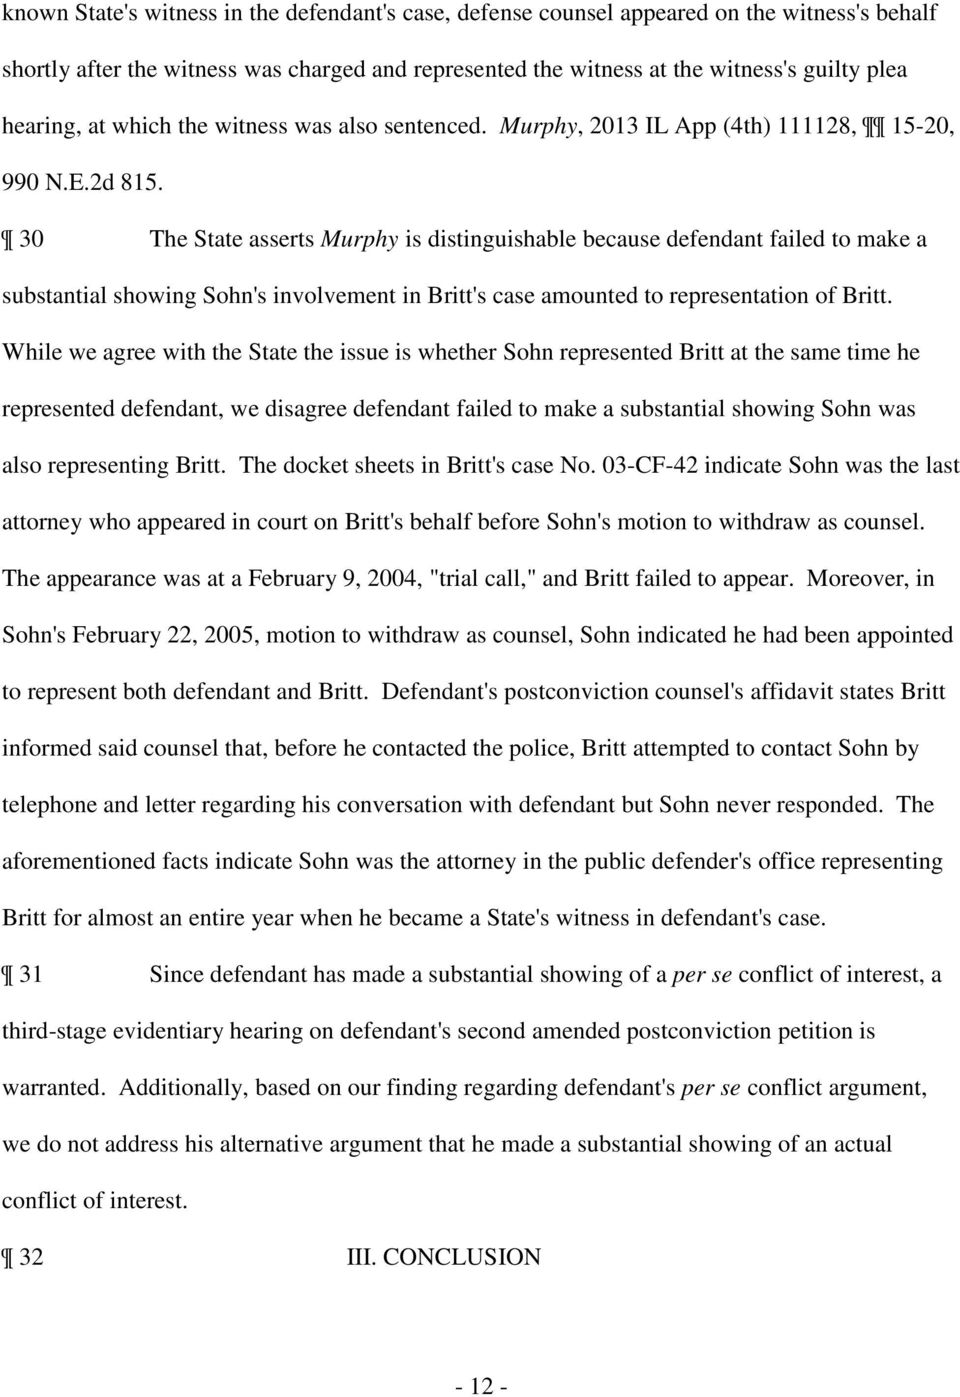 30 The State asserts Murphy is distinguishable because defendant failed to make a substantial showing Sohn's involvement in Britt's case amounted to representation of Britt.